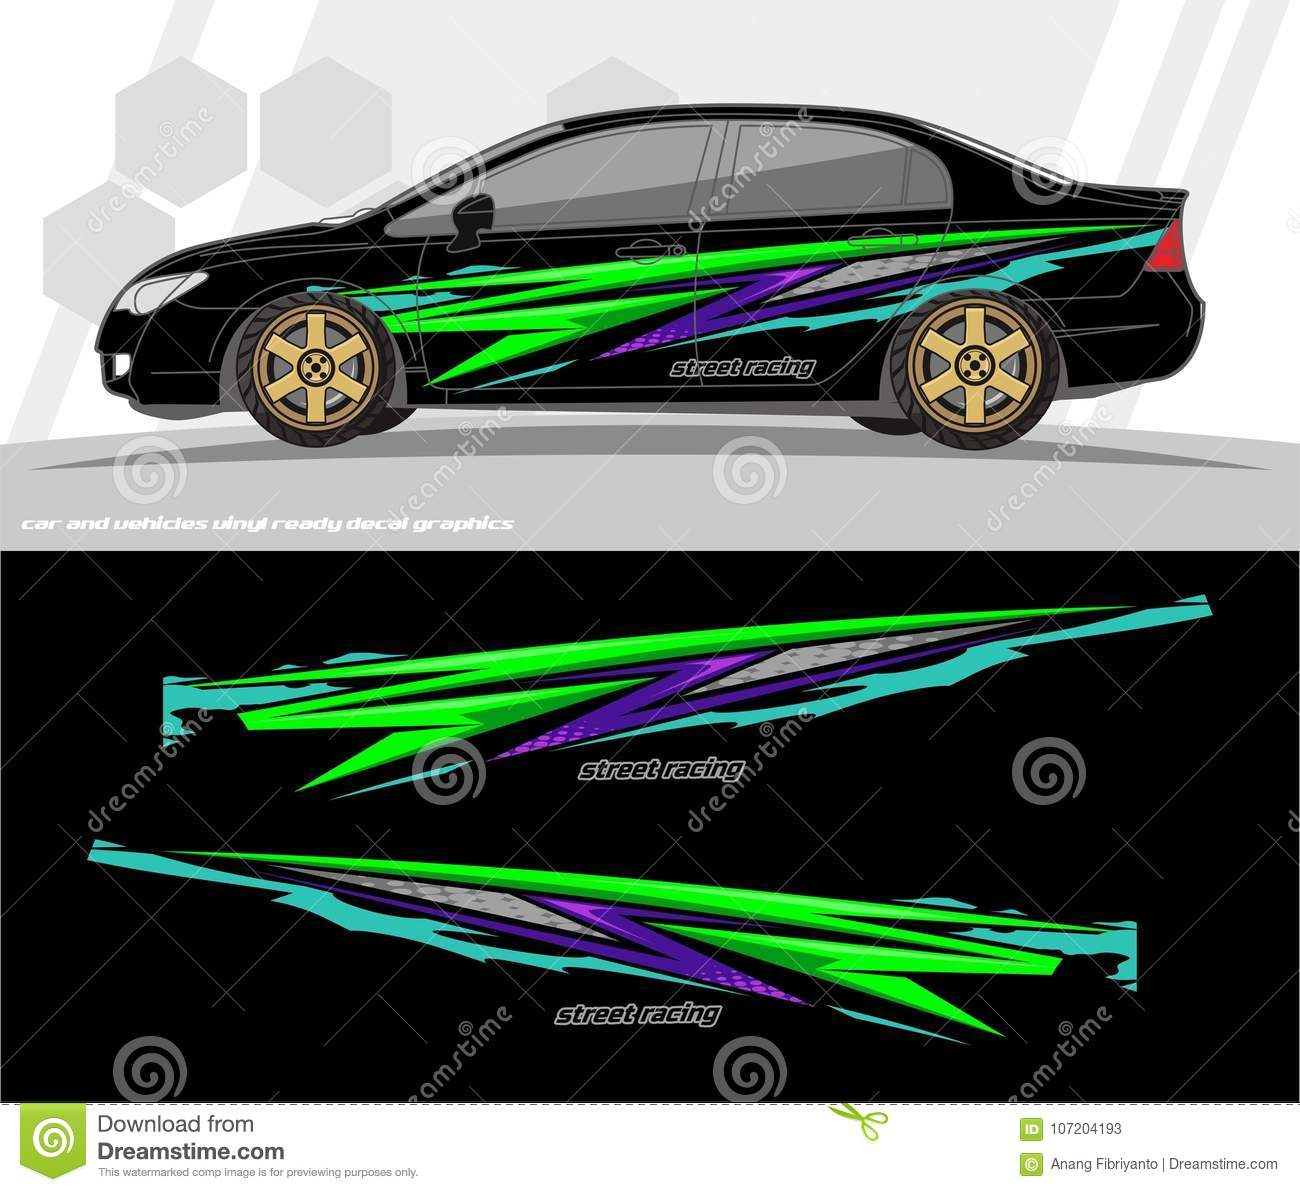 Car and vehicles wrap decal graphics kit vector designs ready to print and cut for vinyl stickers